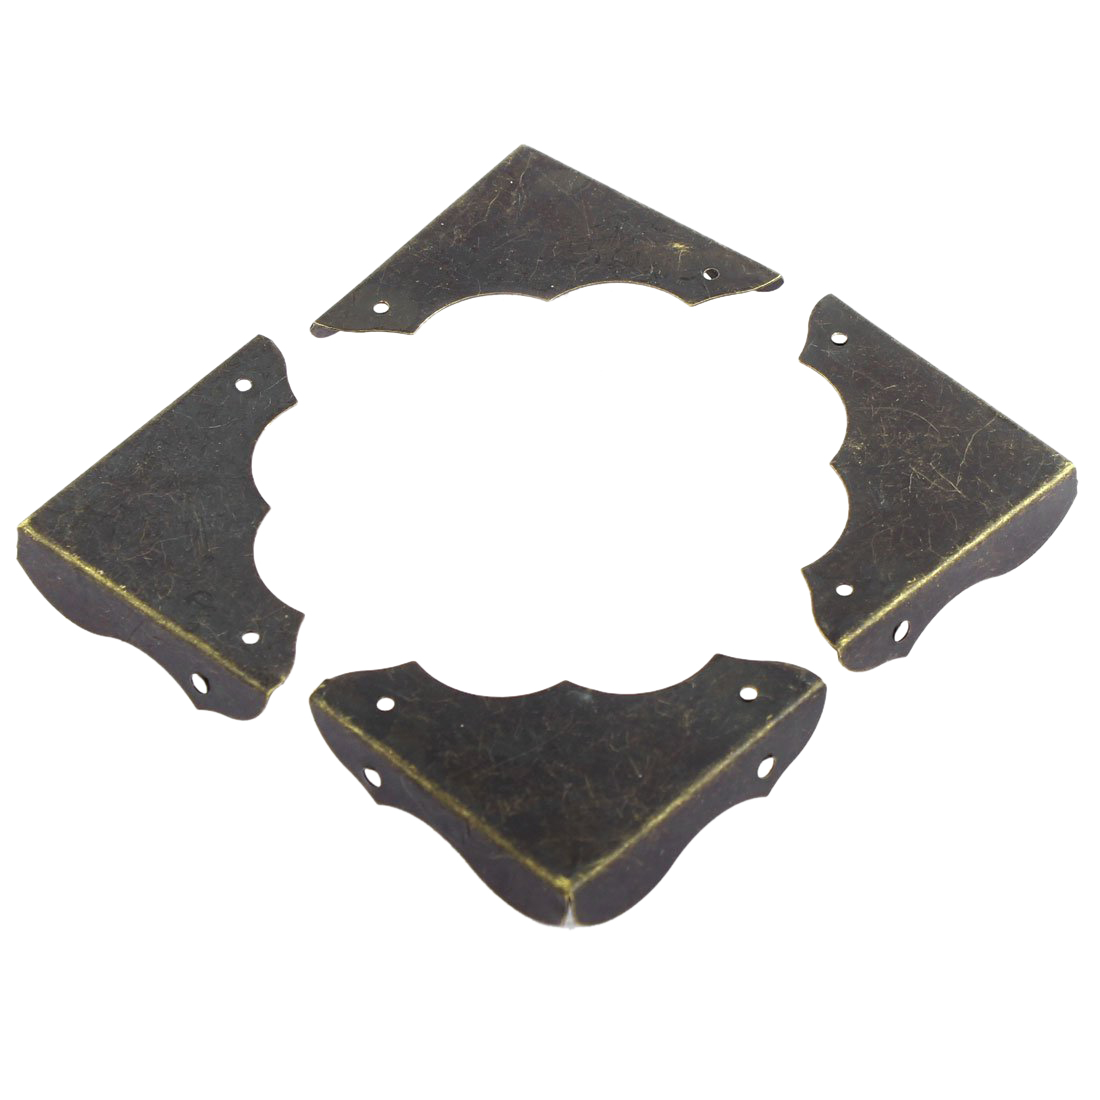 Metal Table Retro Style Corner Covers Protector 40mmx40mm 4 Pcs Bronze